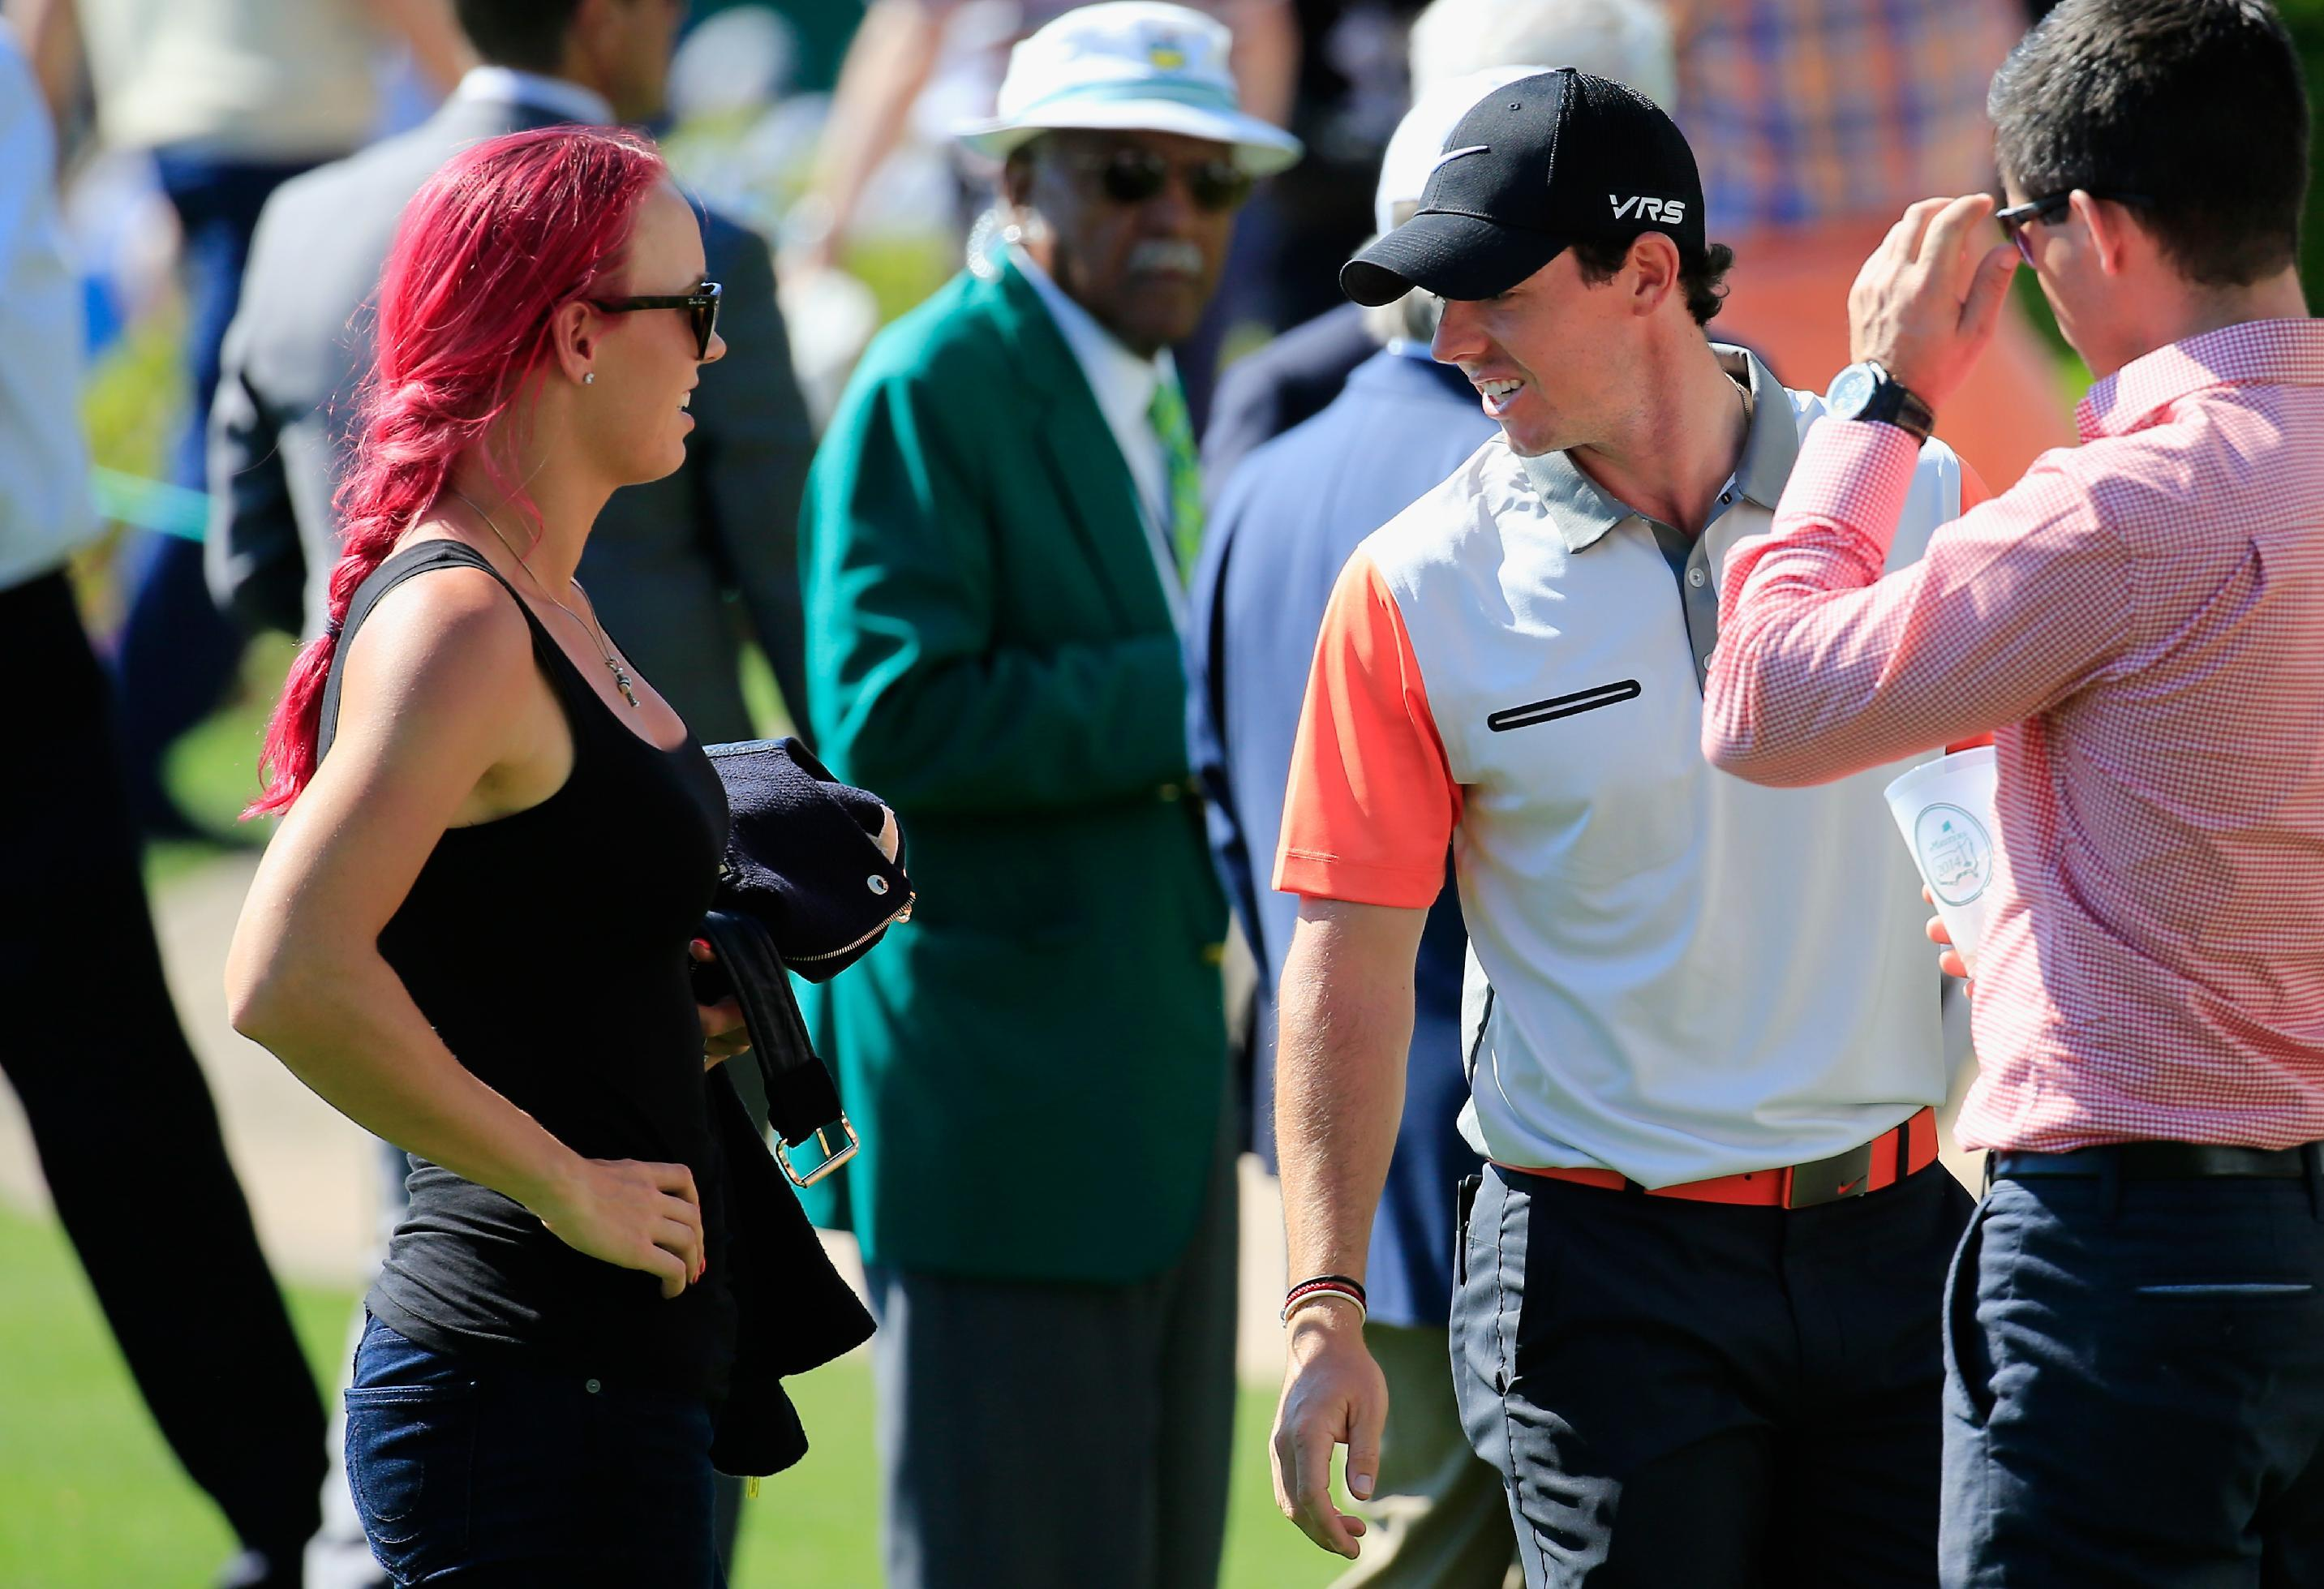 Golf/Tennis - McIlroy reminded of 'Sweet Caroline' at rugby match